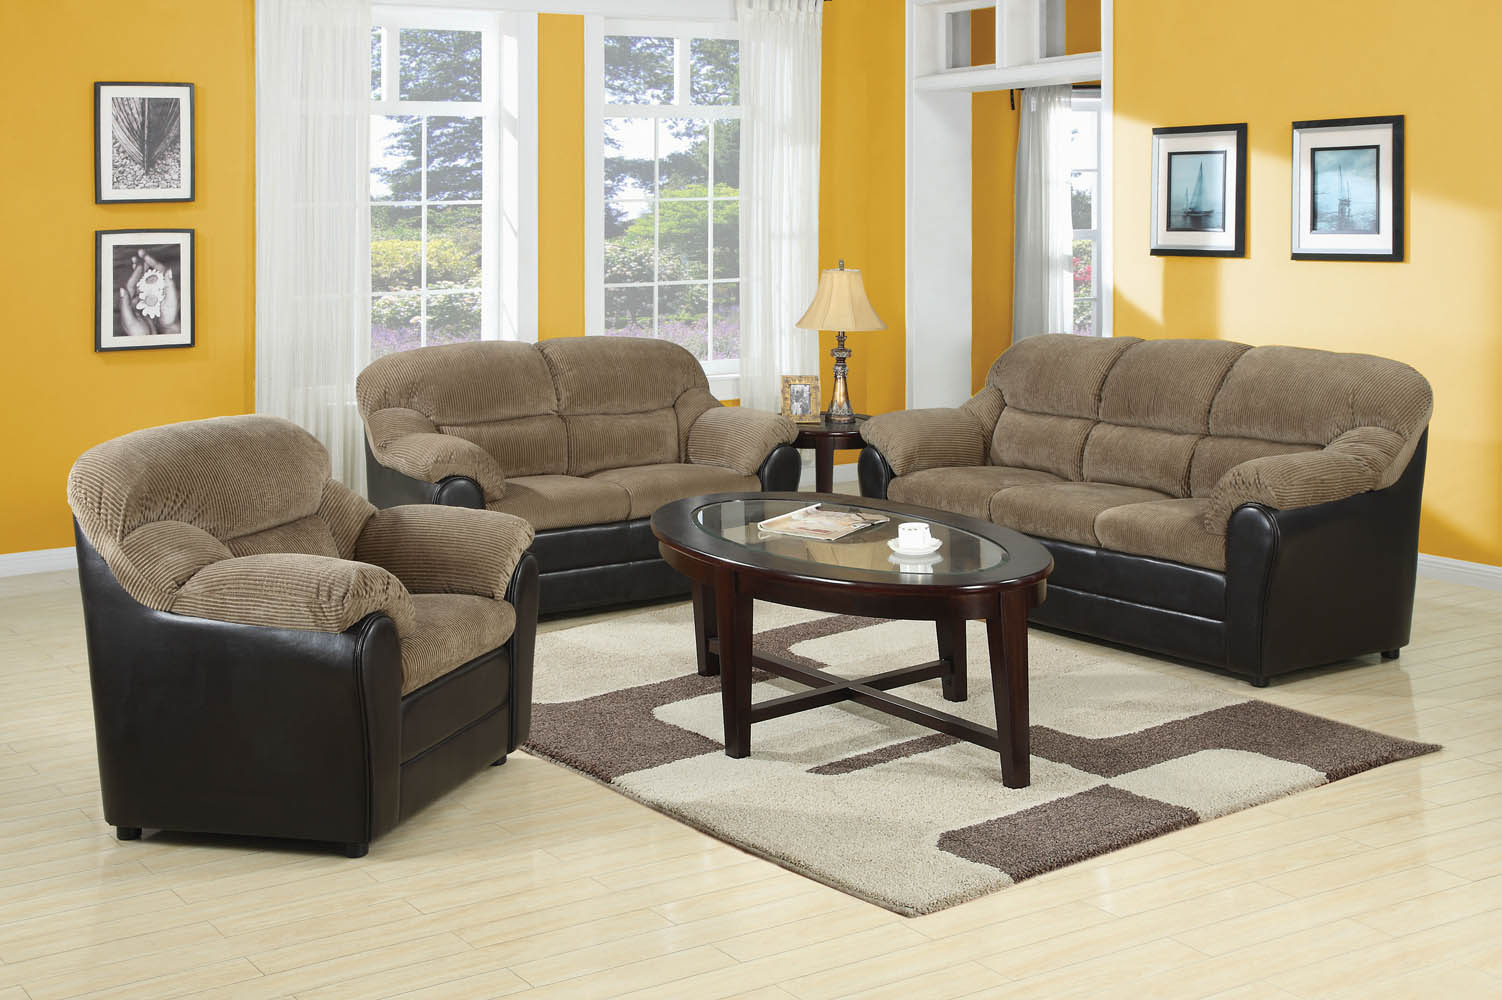 3 piece sofa set 3 Piece Brown Corduroy Espresso Pub Sofa Set 3 piece sofa set